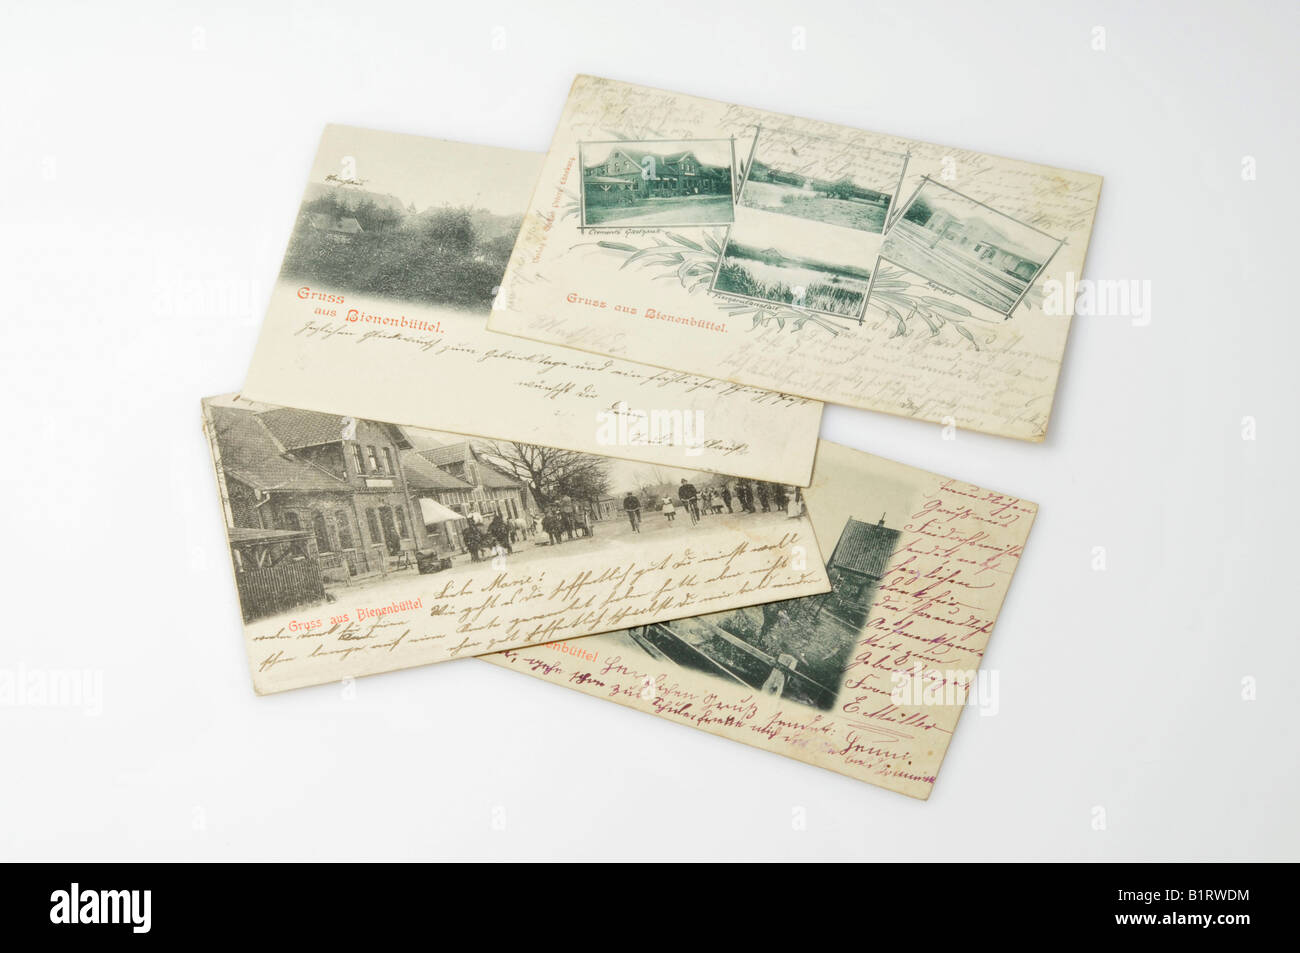 Old handwritten picture postcards dating to around 1900 from Bienenbuettel, Lower Saxony, Germany, Europe - Stock Image